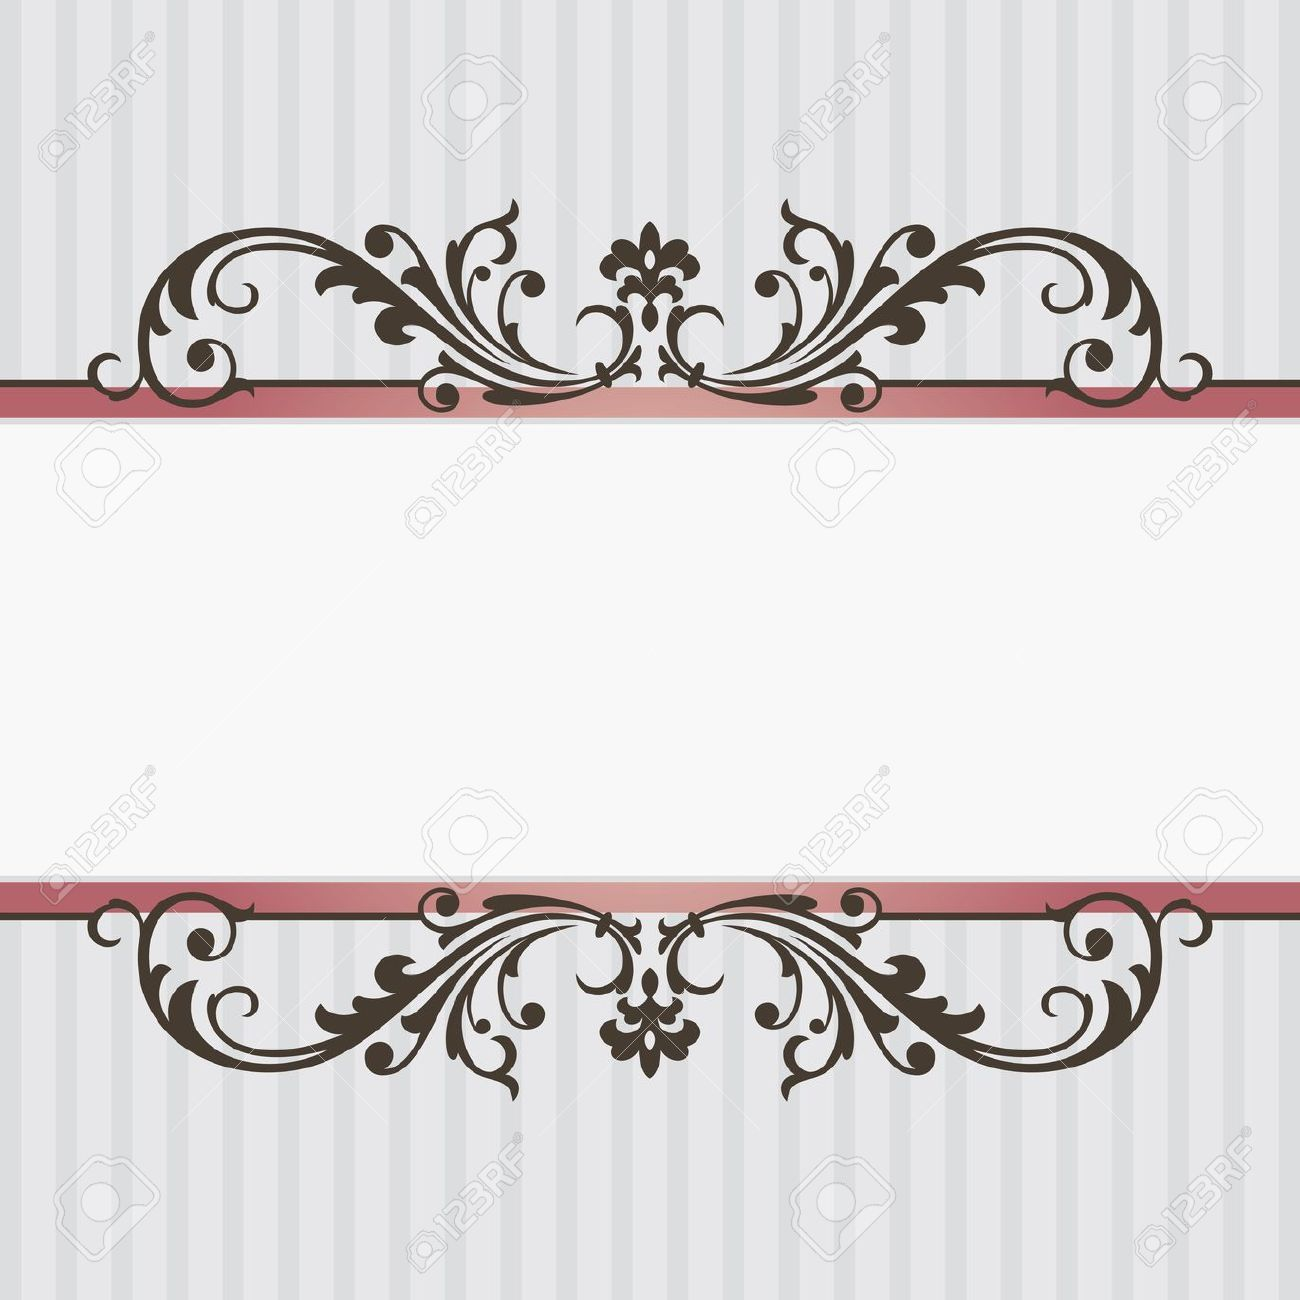 Abstract Vintage Frame Vector Illustration Royalty Free Cliparts ...